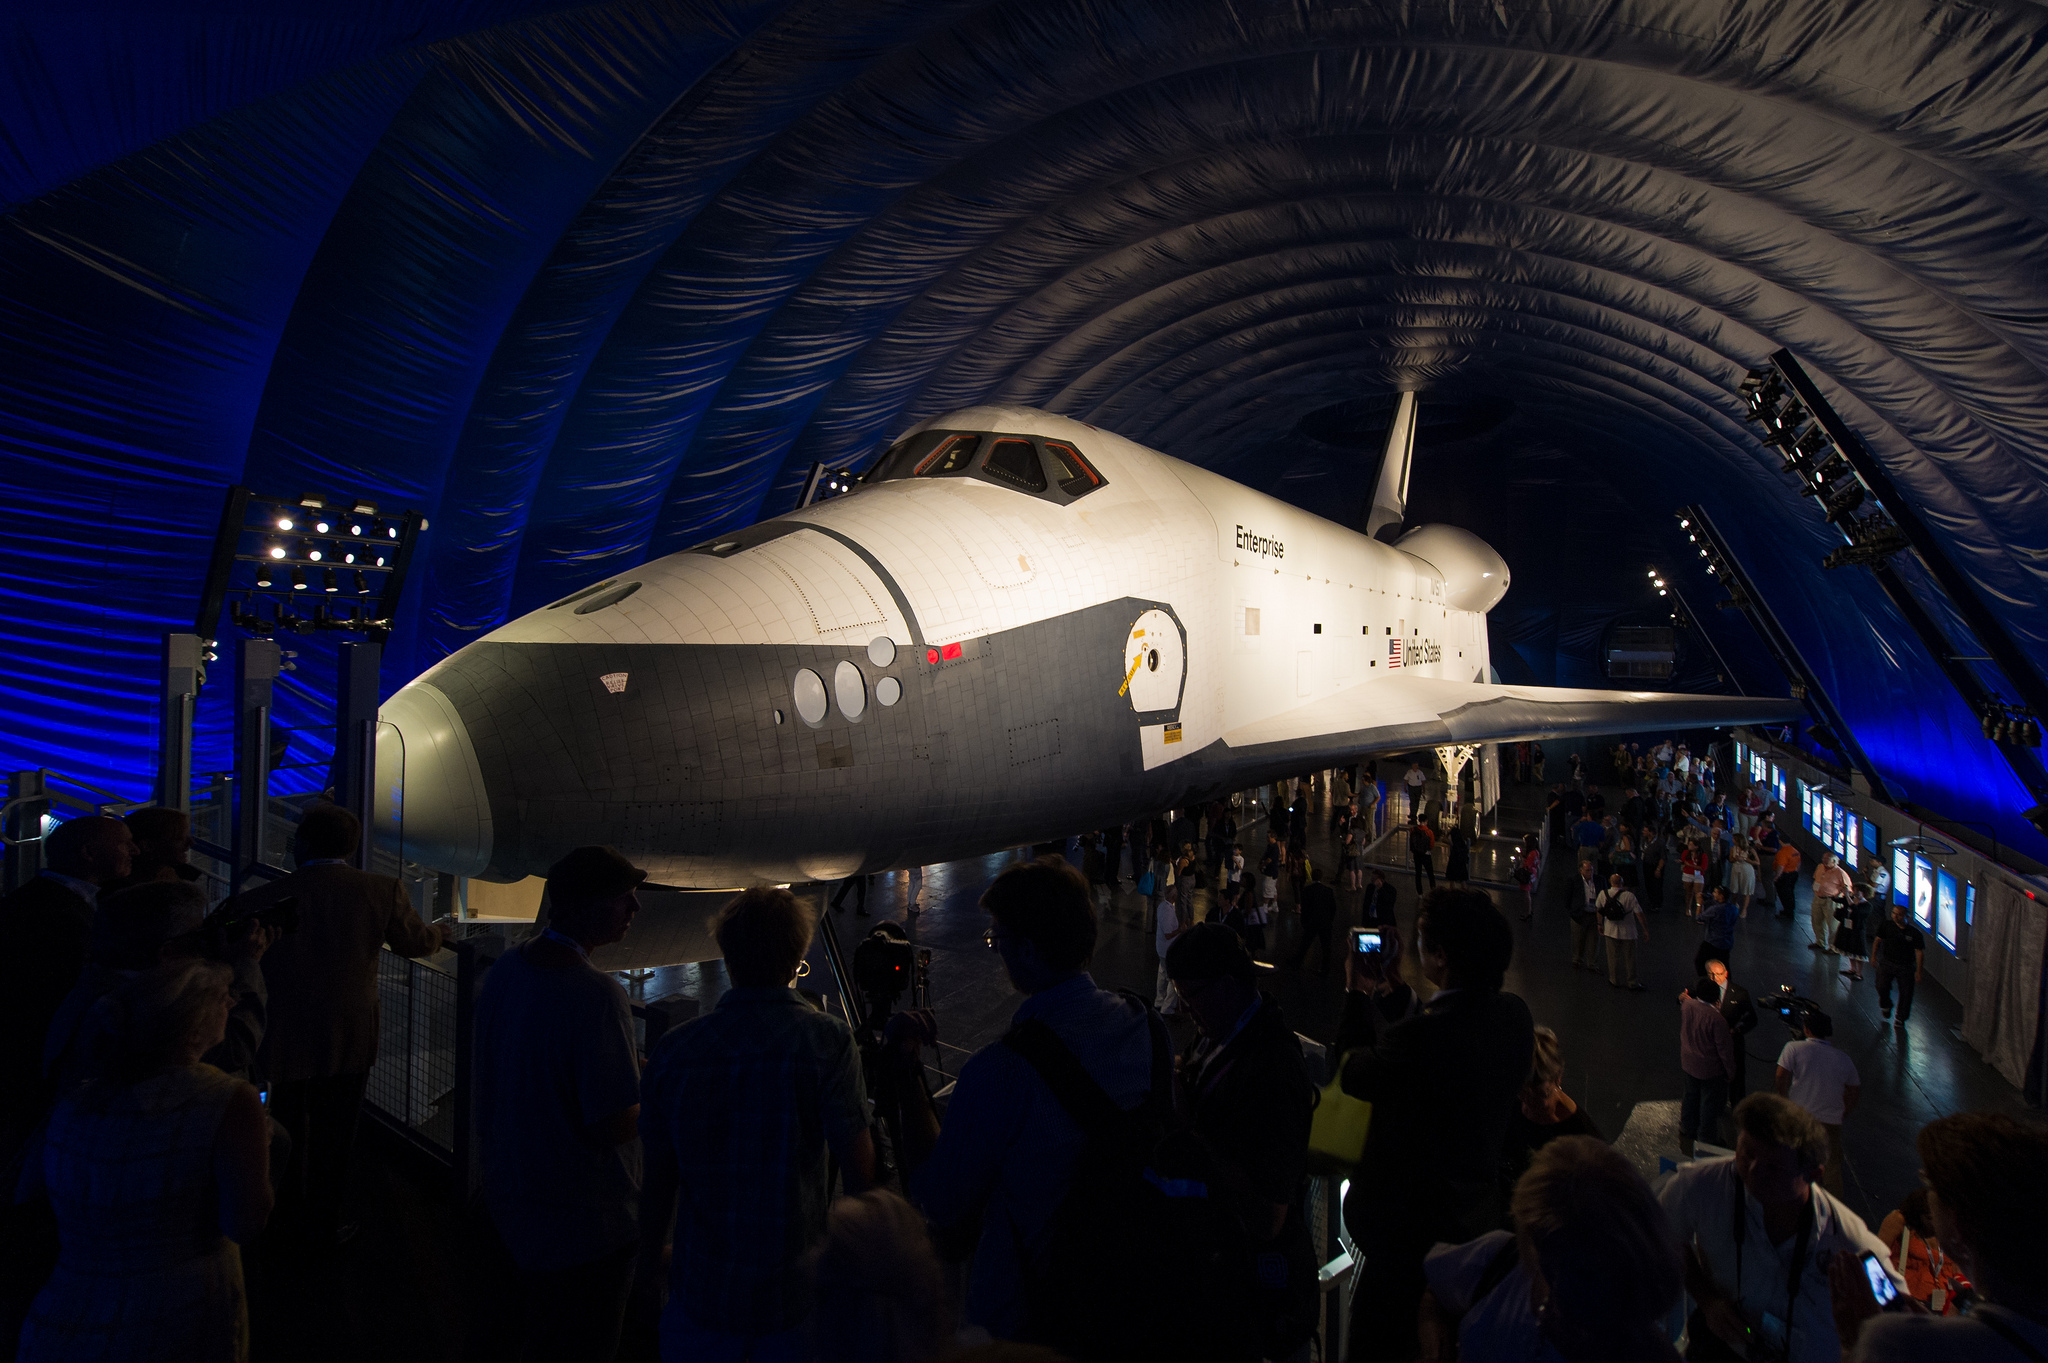 NASA Transfers Enterprise Title To Intrepid Museum NASA - Nasa museums in usa